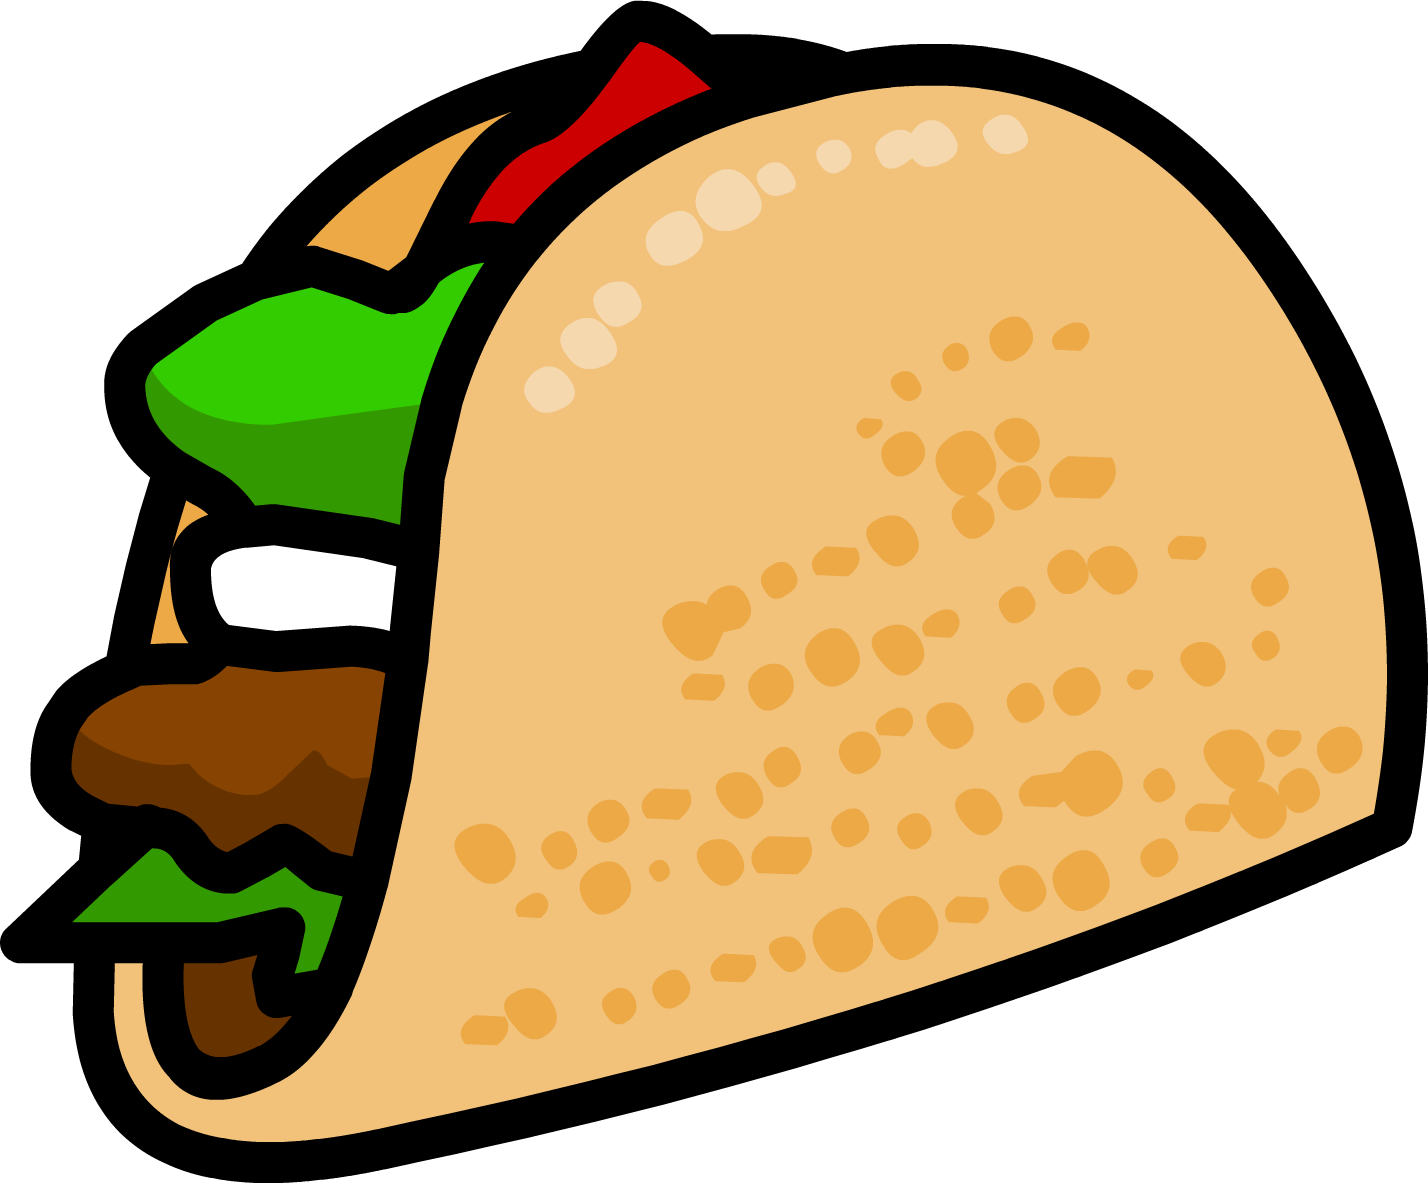 1428x1183 Funny Taco Clip Art Mexican On Two Wheels Image